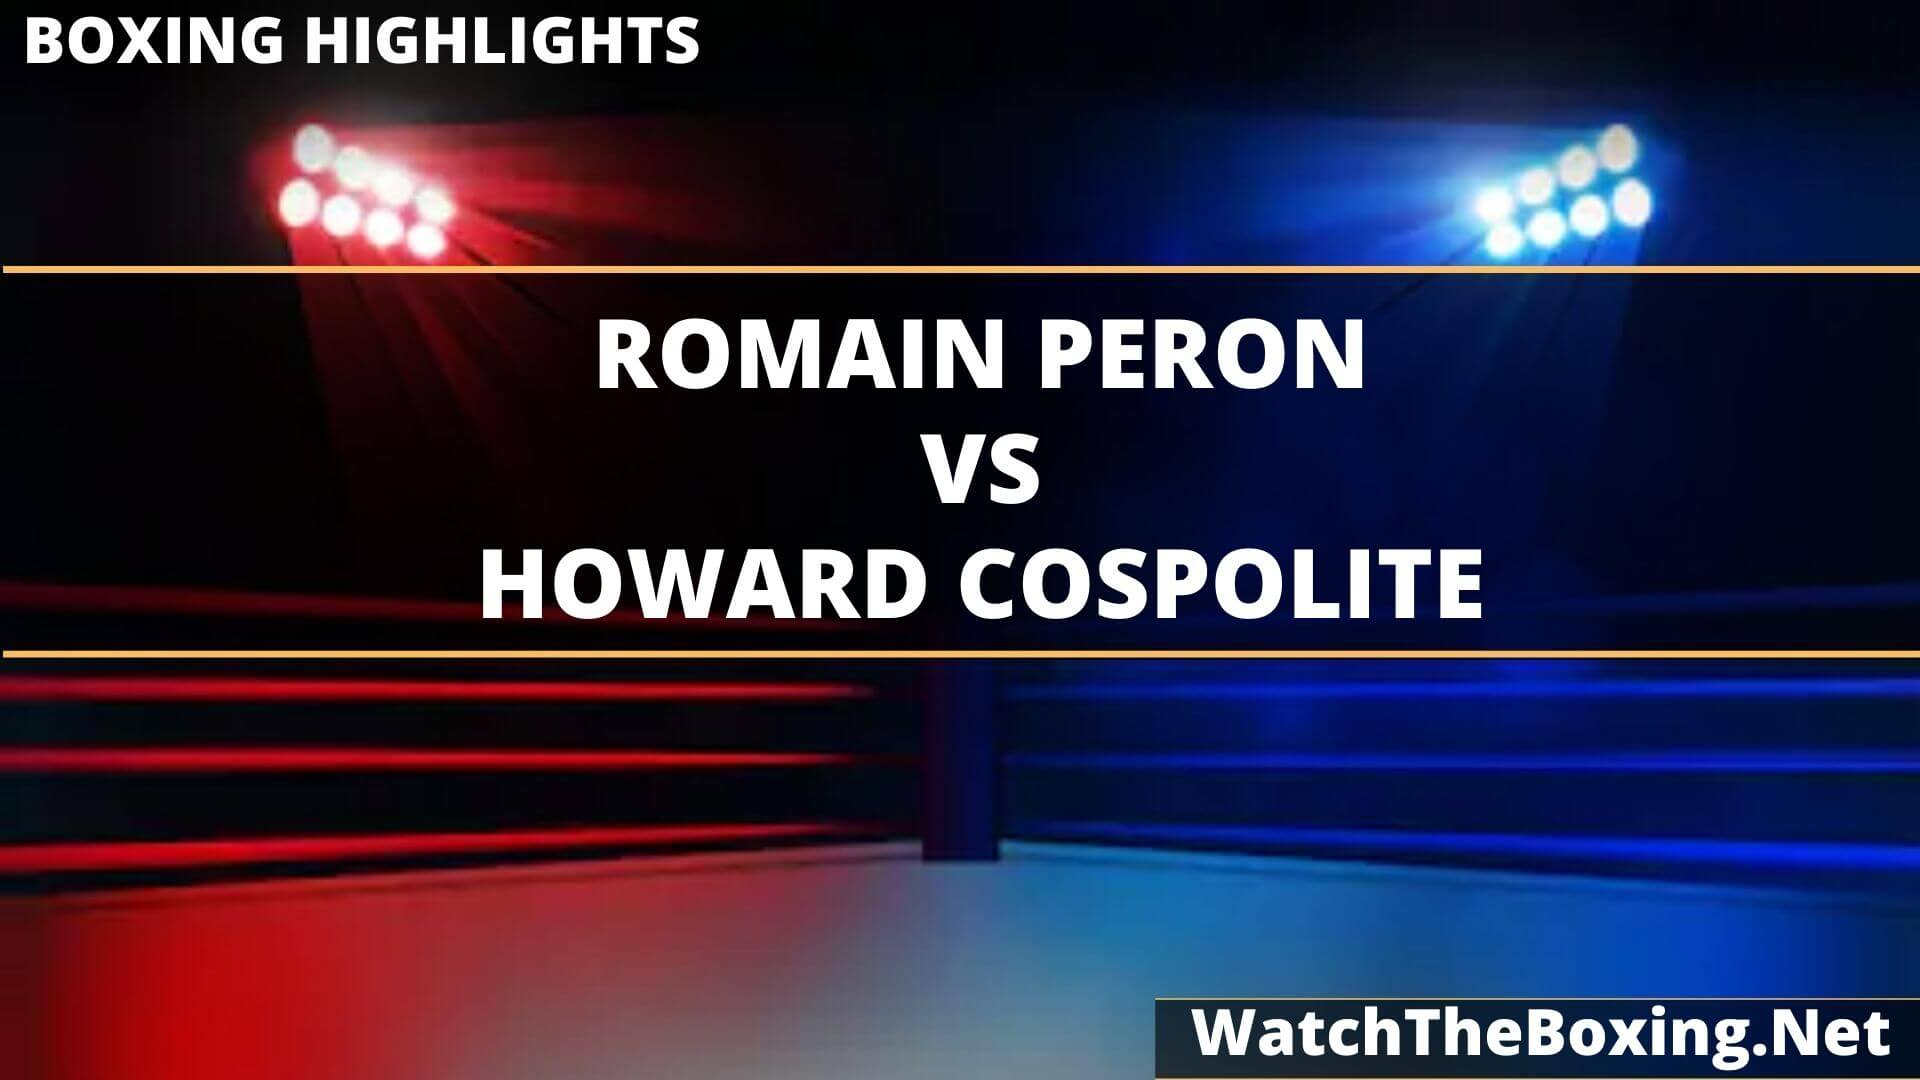 Romain Peron Vs Howard Cospolite Highlights 2020